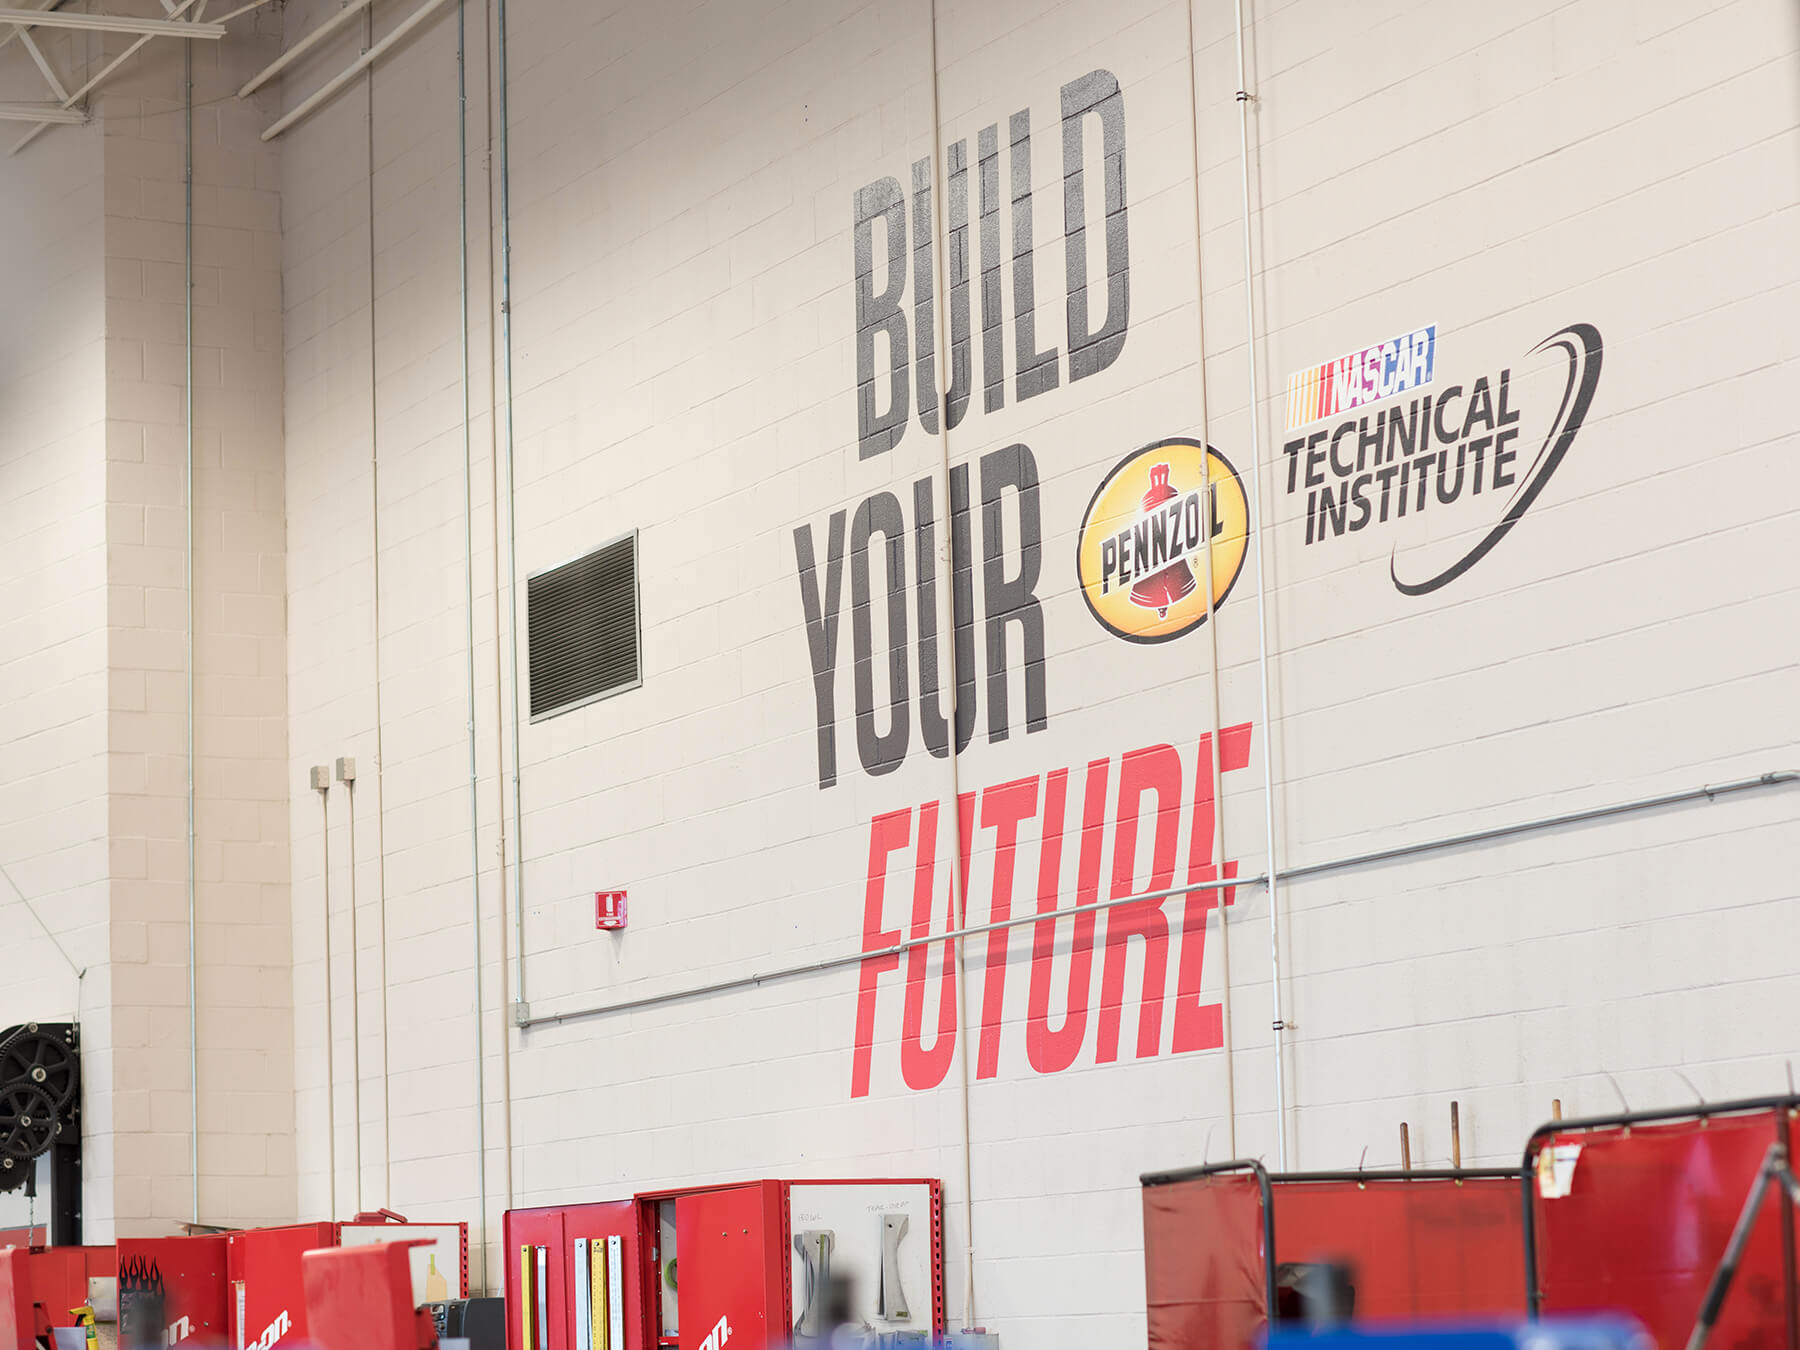 Photo of the BUILD YOUR FUTURE messaging on the side of a wall at Mooresville campus